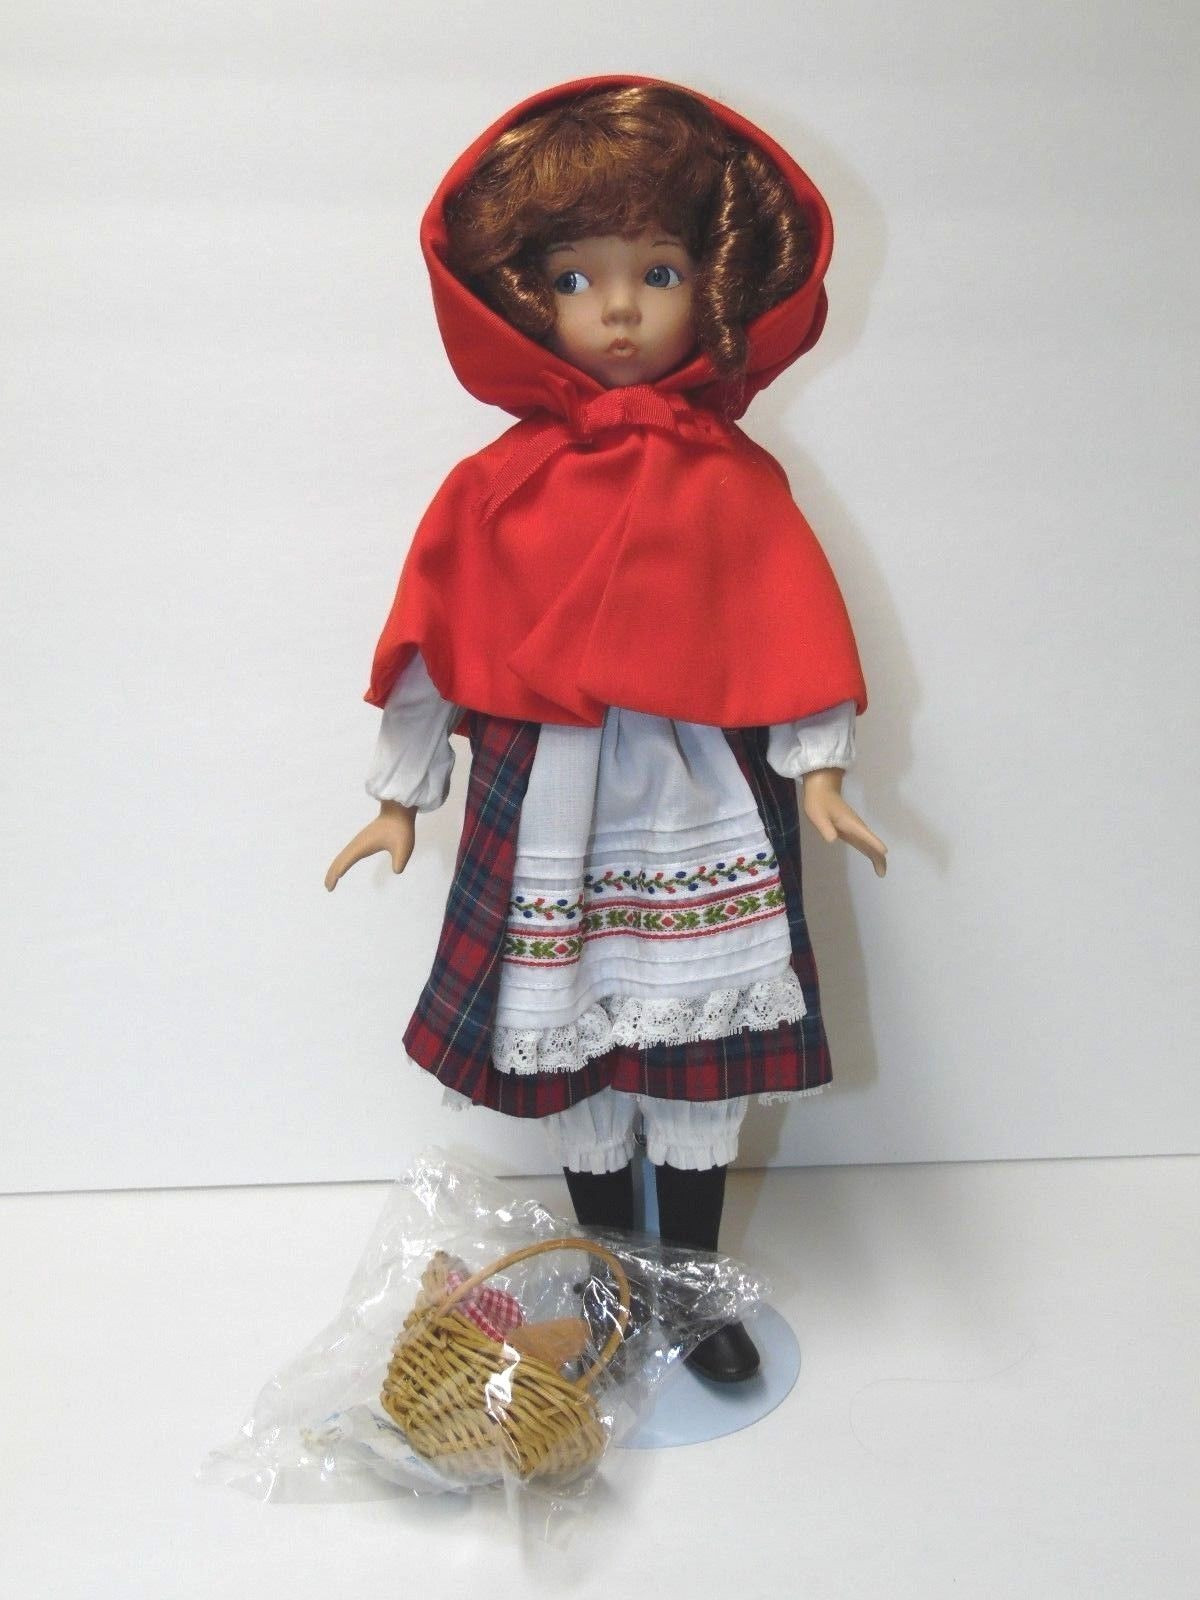 Little Red Riding Hood Doll Inspirational Little Red Riding Hood Doll Knowles Porcelain Effner Of Delightful 49 Models Little Red Riding Hood Doll